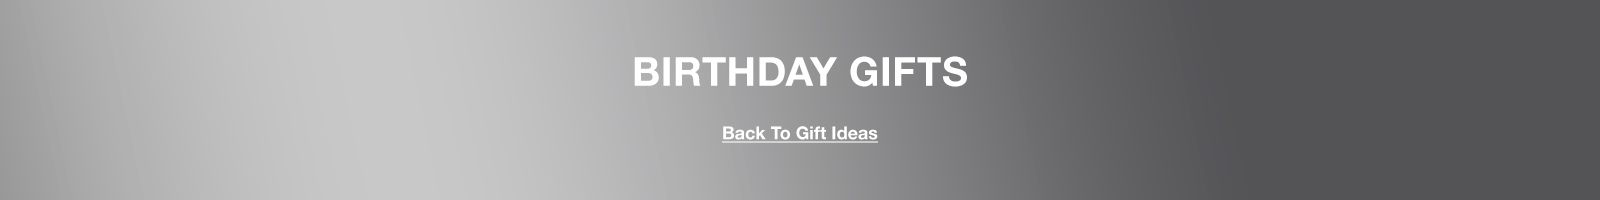 Birthday Gifts, Back to Gift Ideas